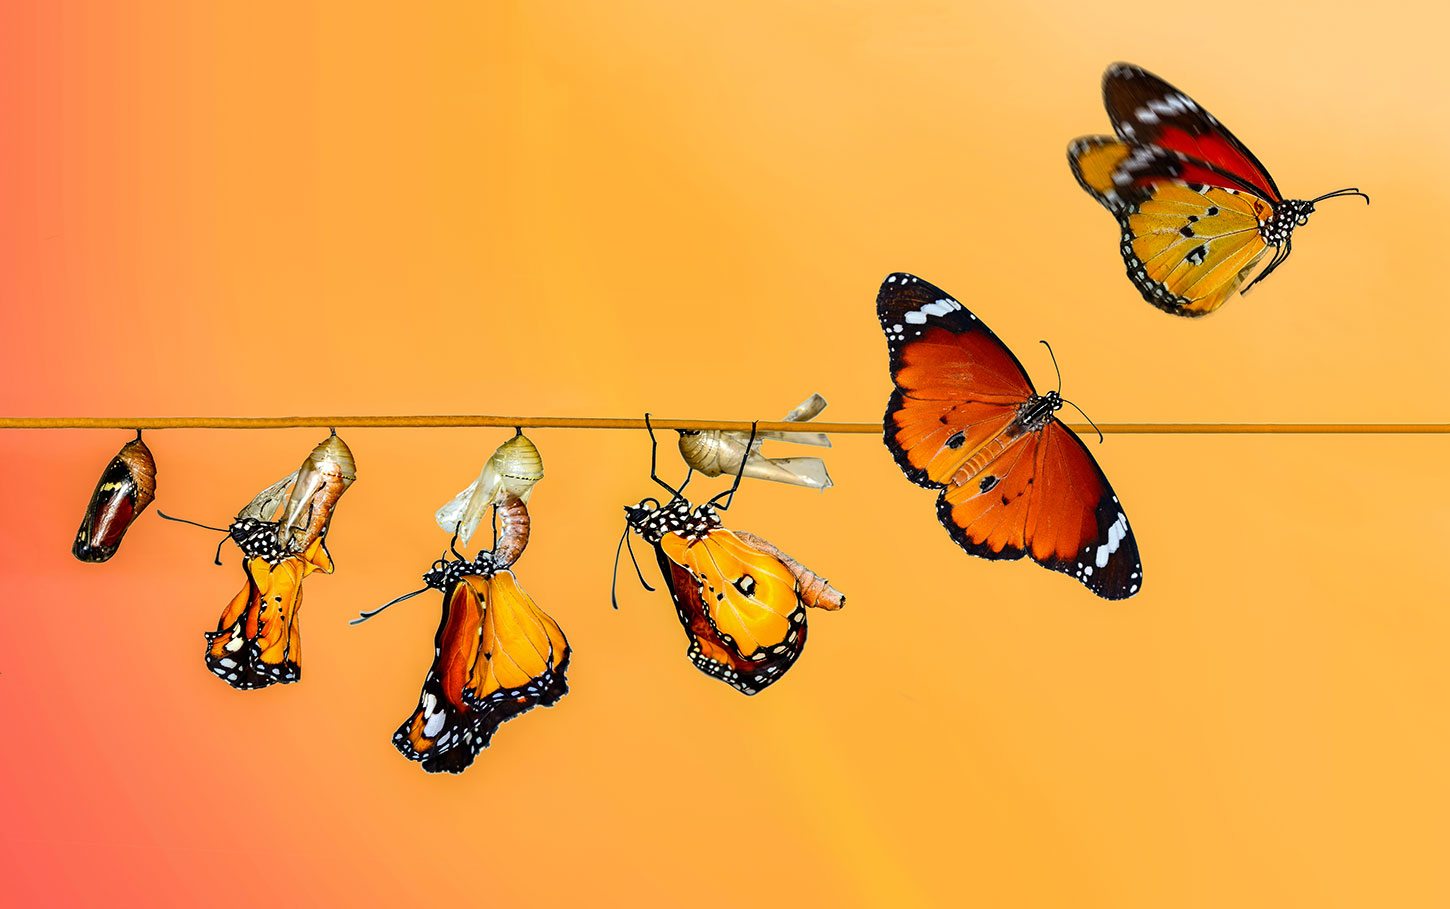 Stages of cocoon to butterfly